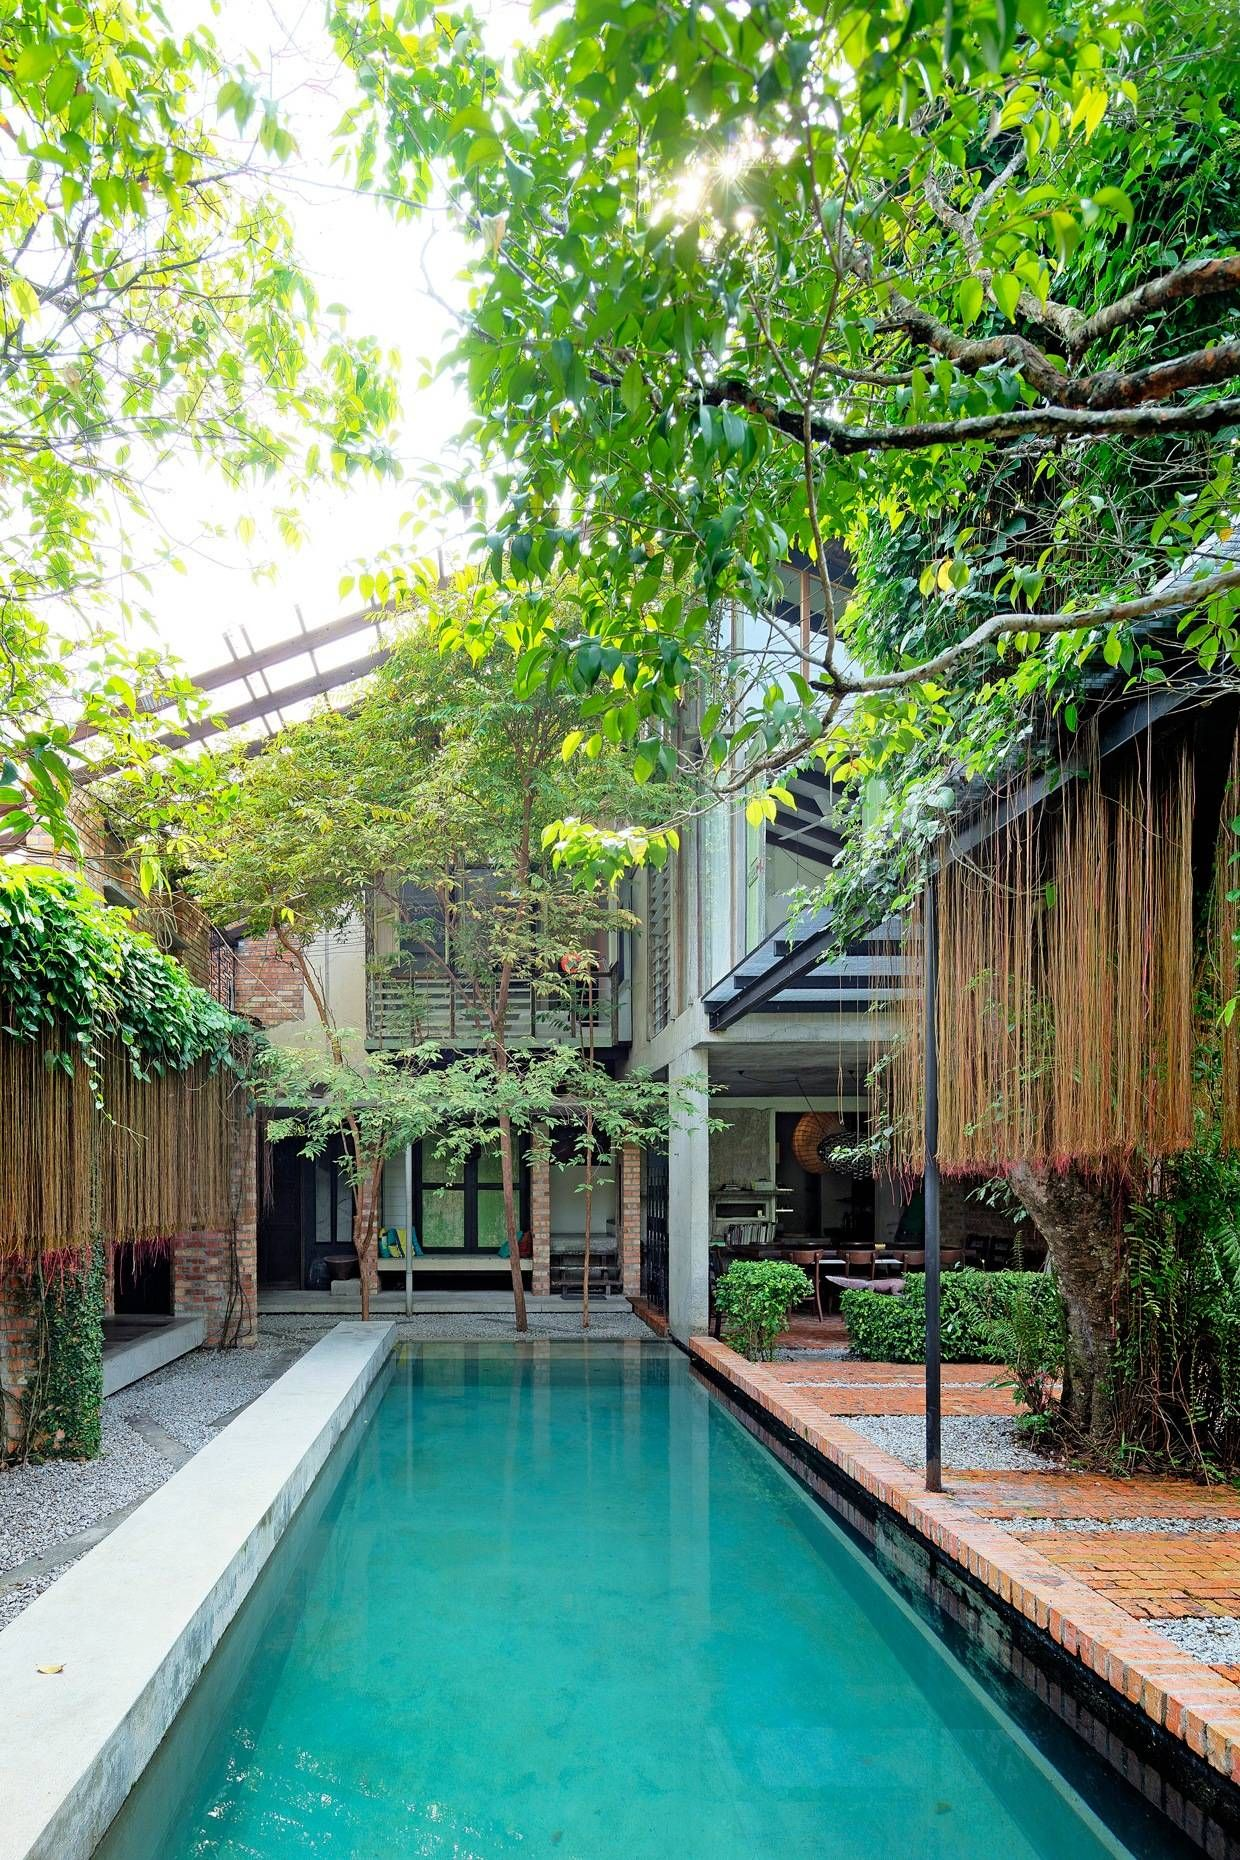 Thai Design And Thai Homes In Particular Have A Long And Storied History.  From Rich